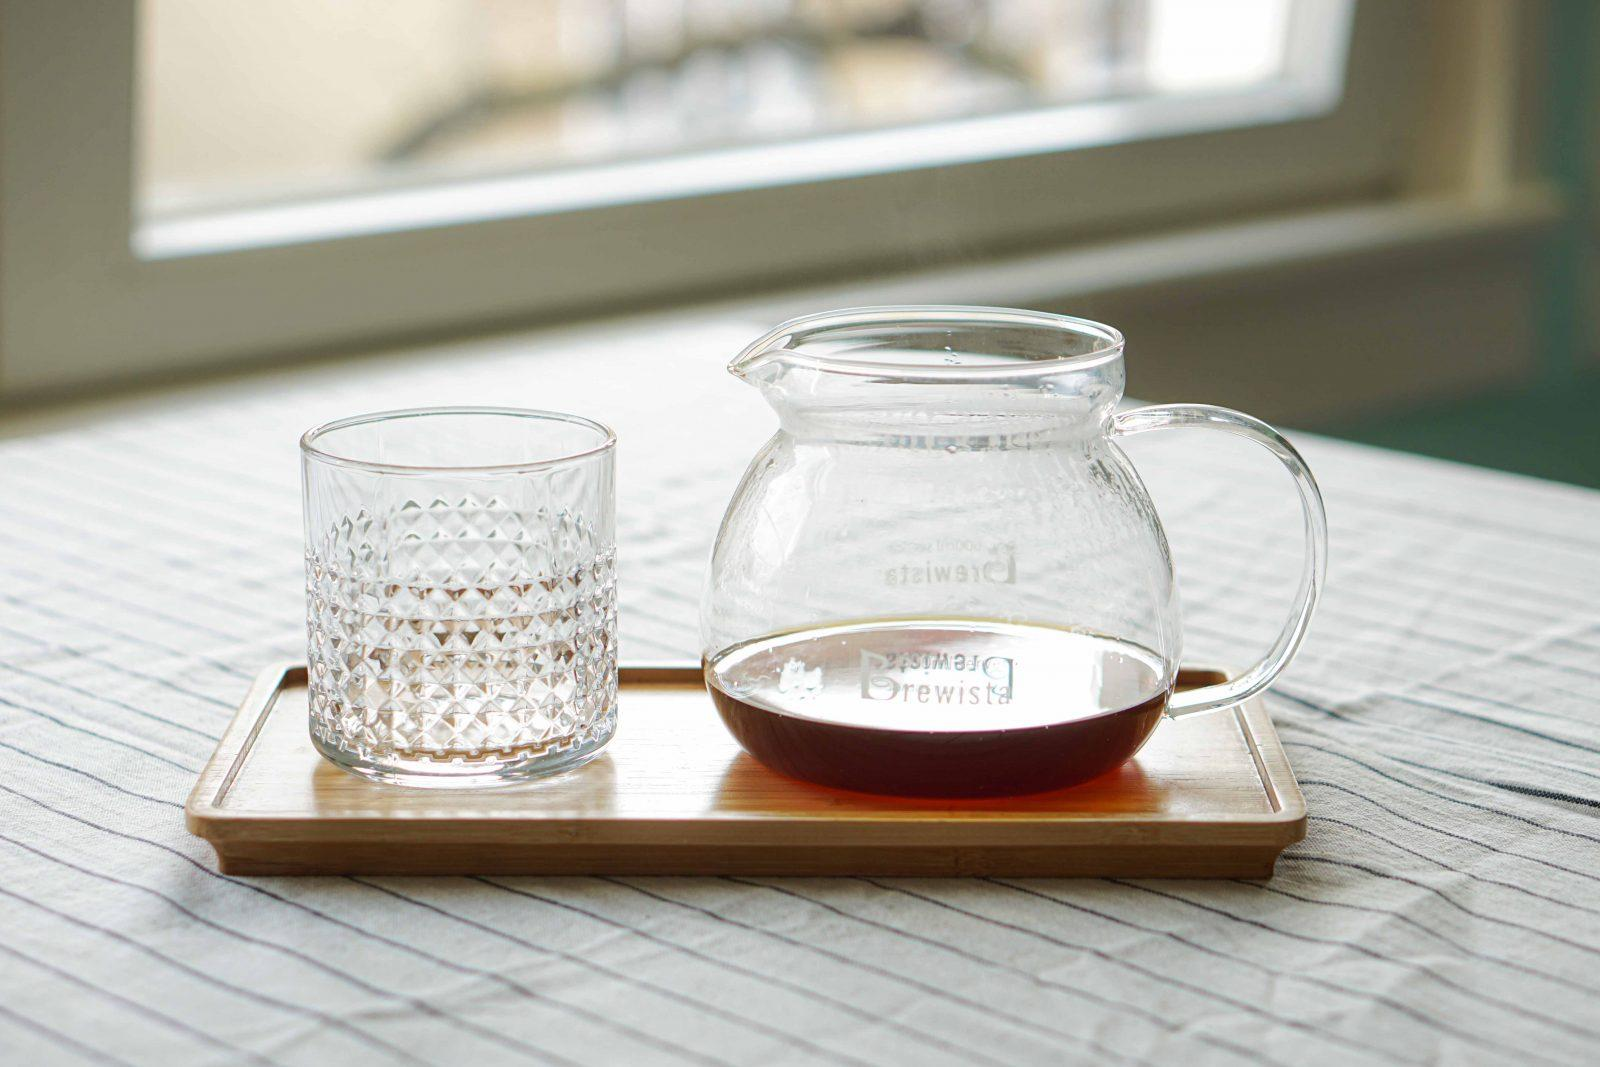 Coffee server and glas